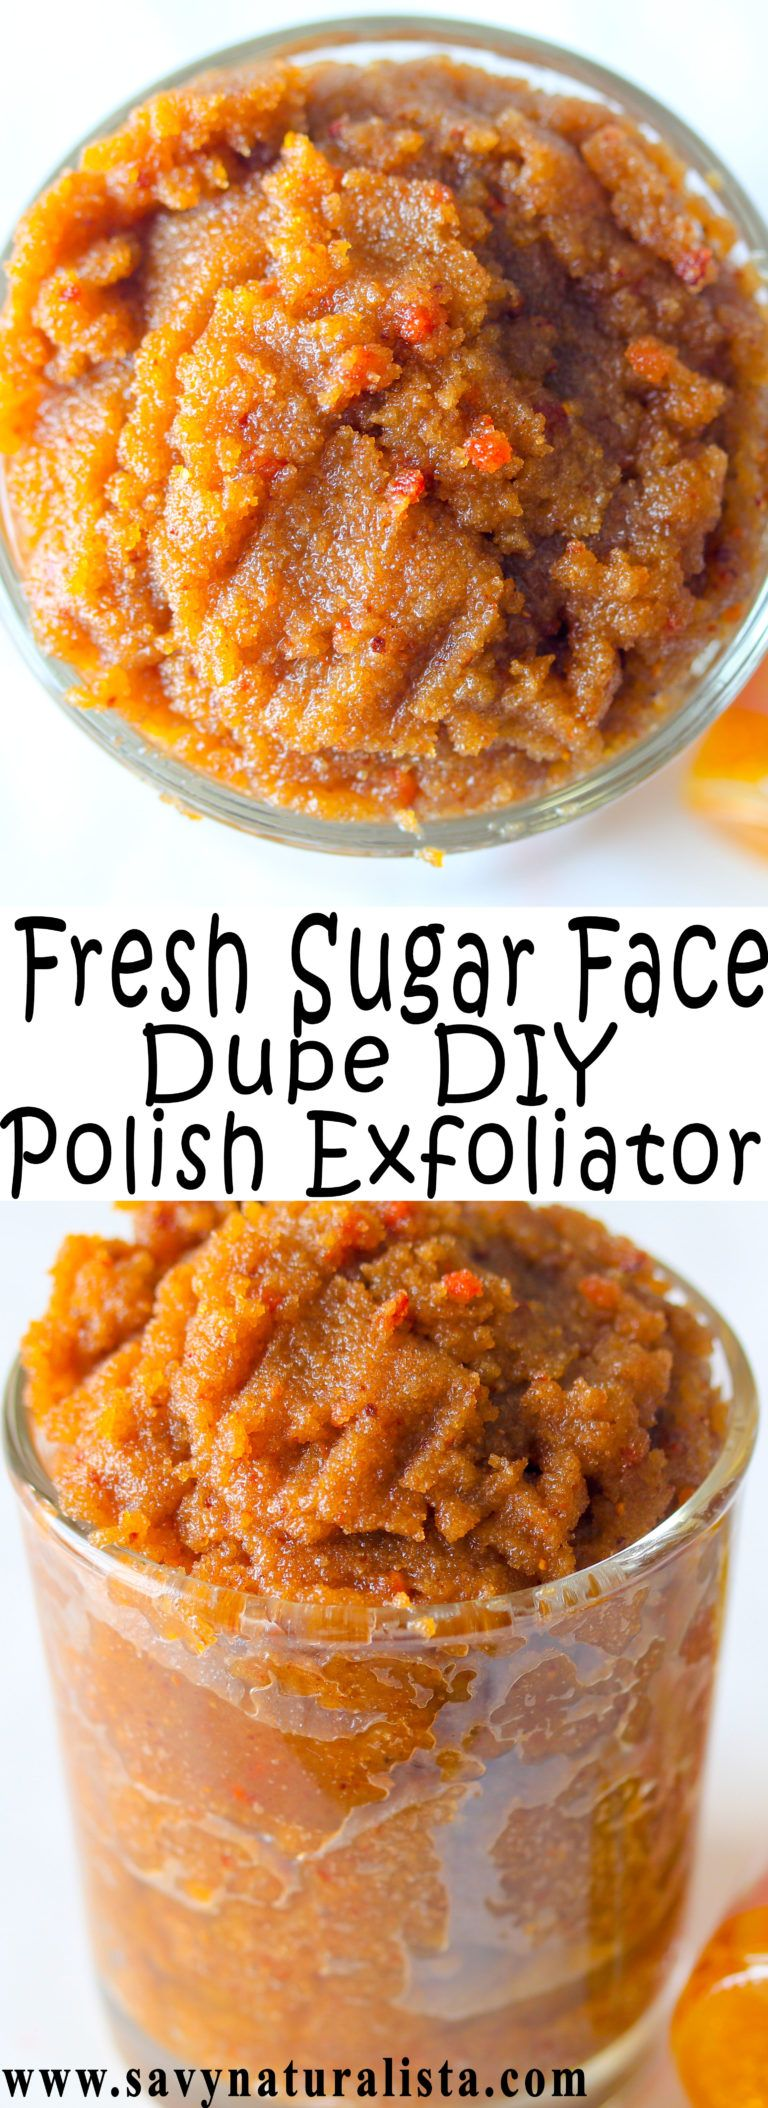 Sugar Face Polish Scrub is a wonderful dupe of Fresh Sugar Face Polish that is all natural and won't break the bank!